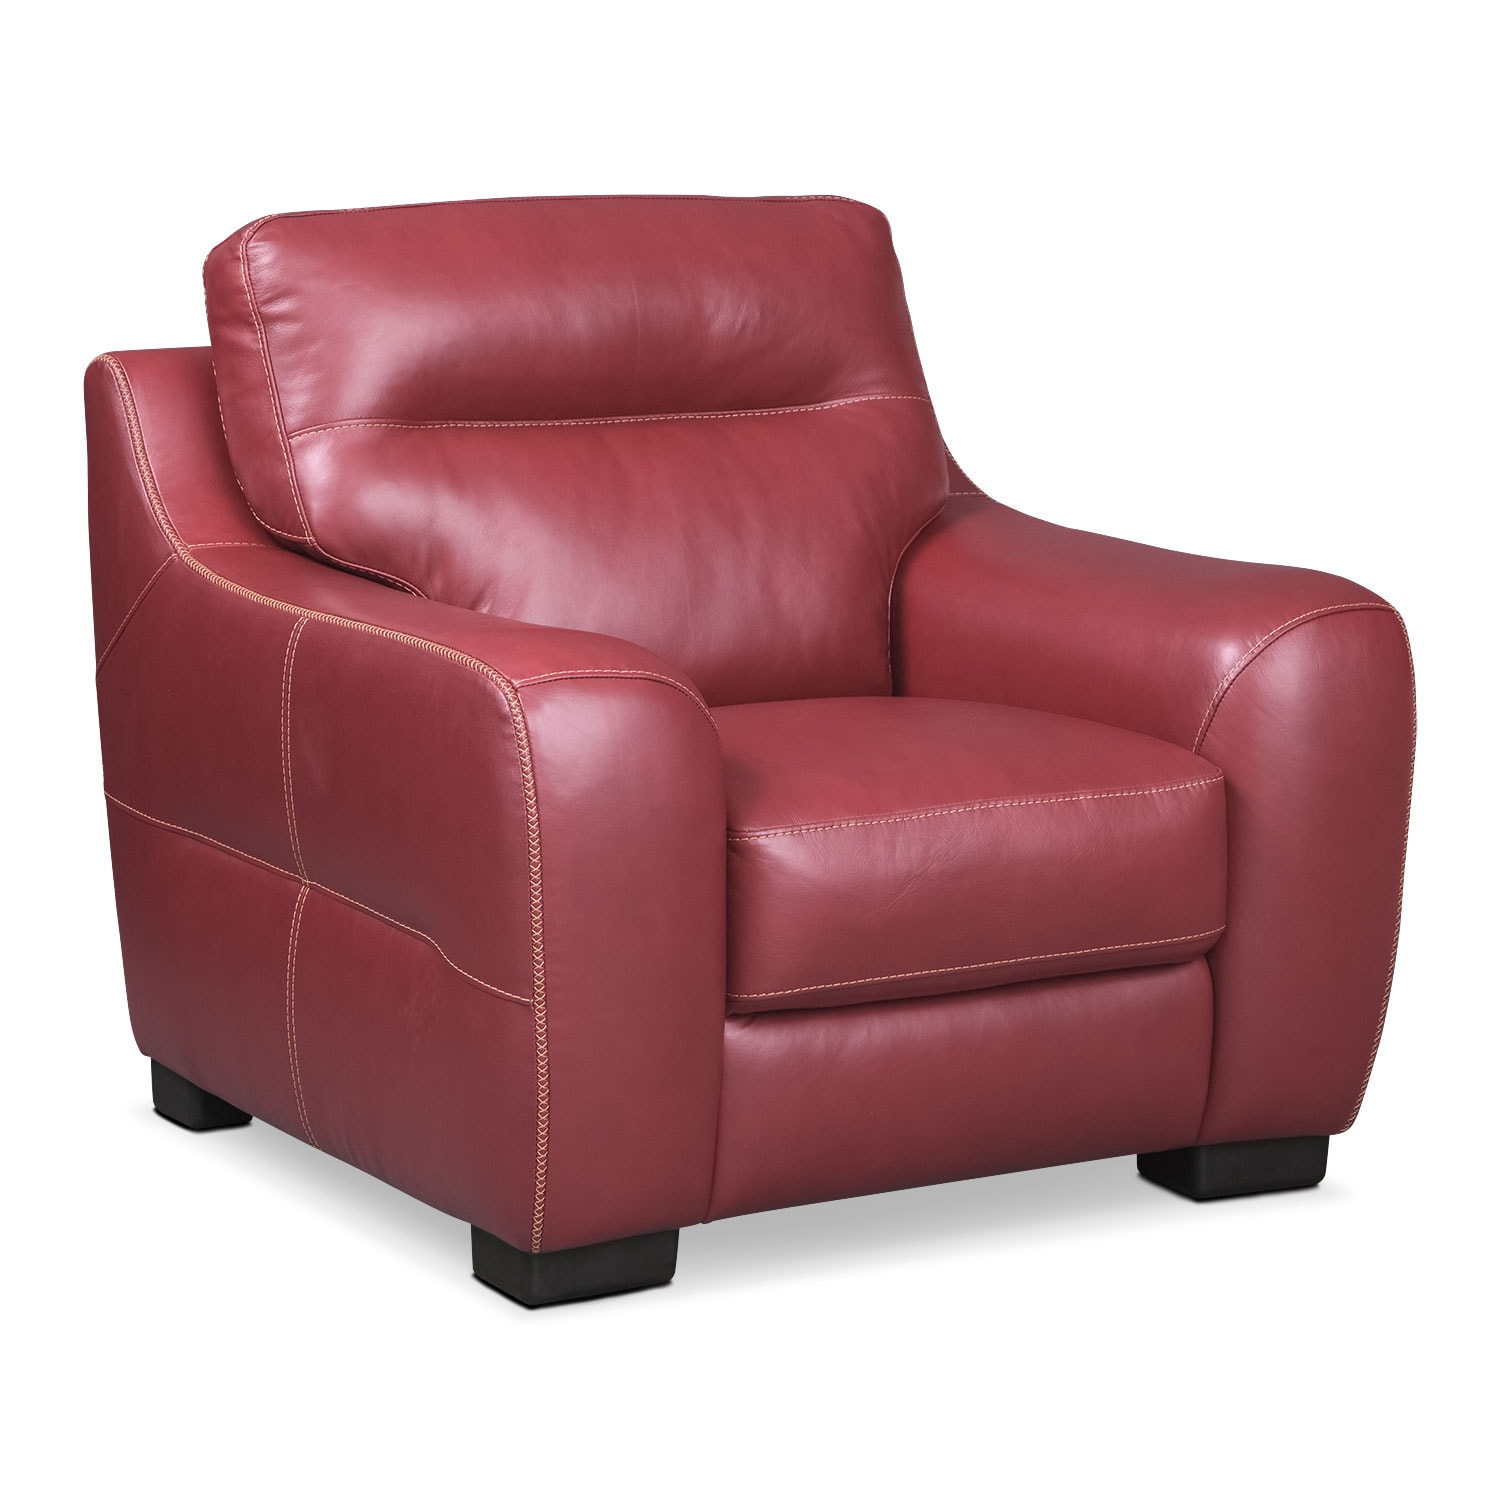 Living Room Furniture - Rocco Chair - Red